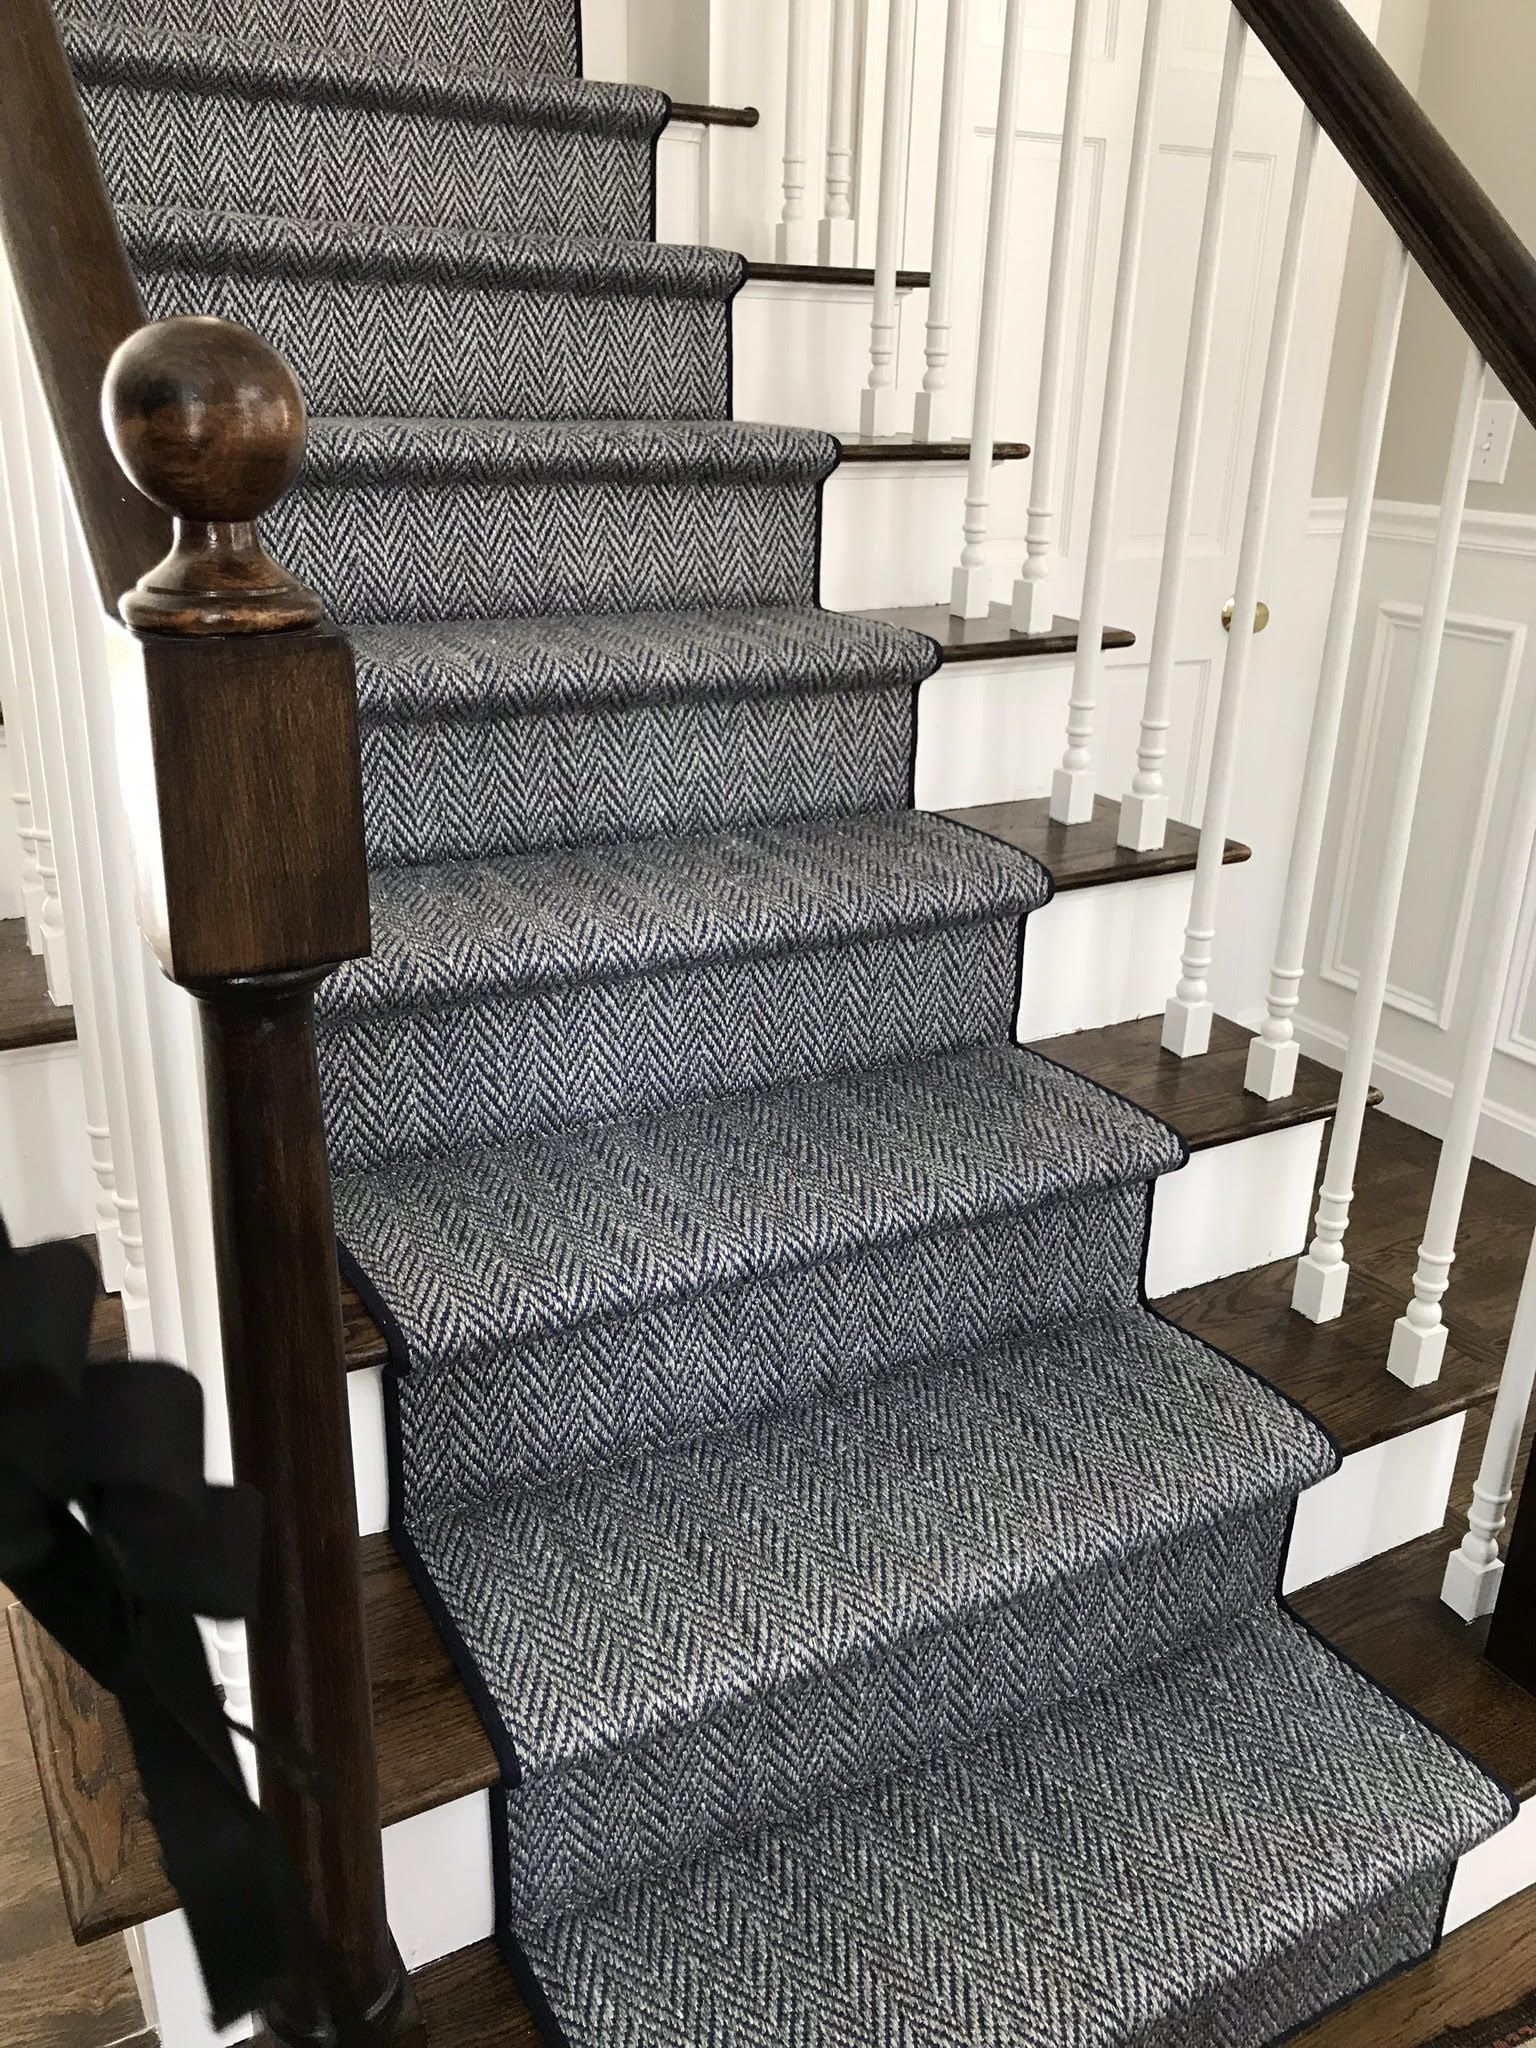 Another Install For A Hollywood Herringbone Stair Runner For A